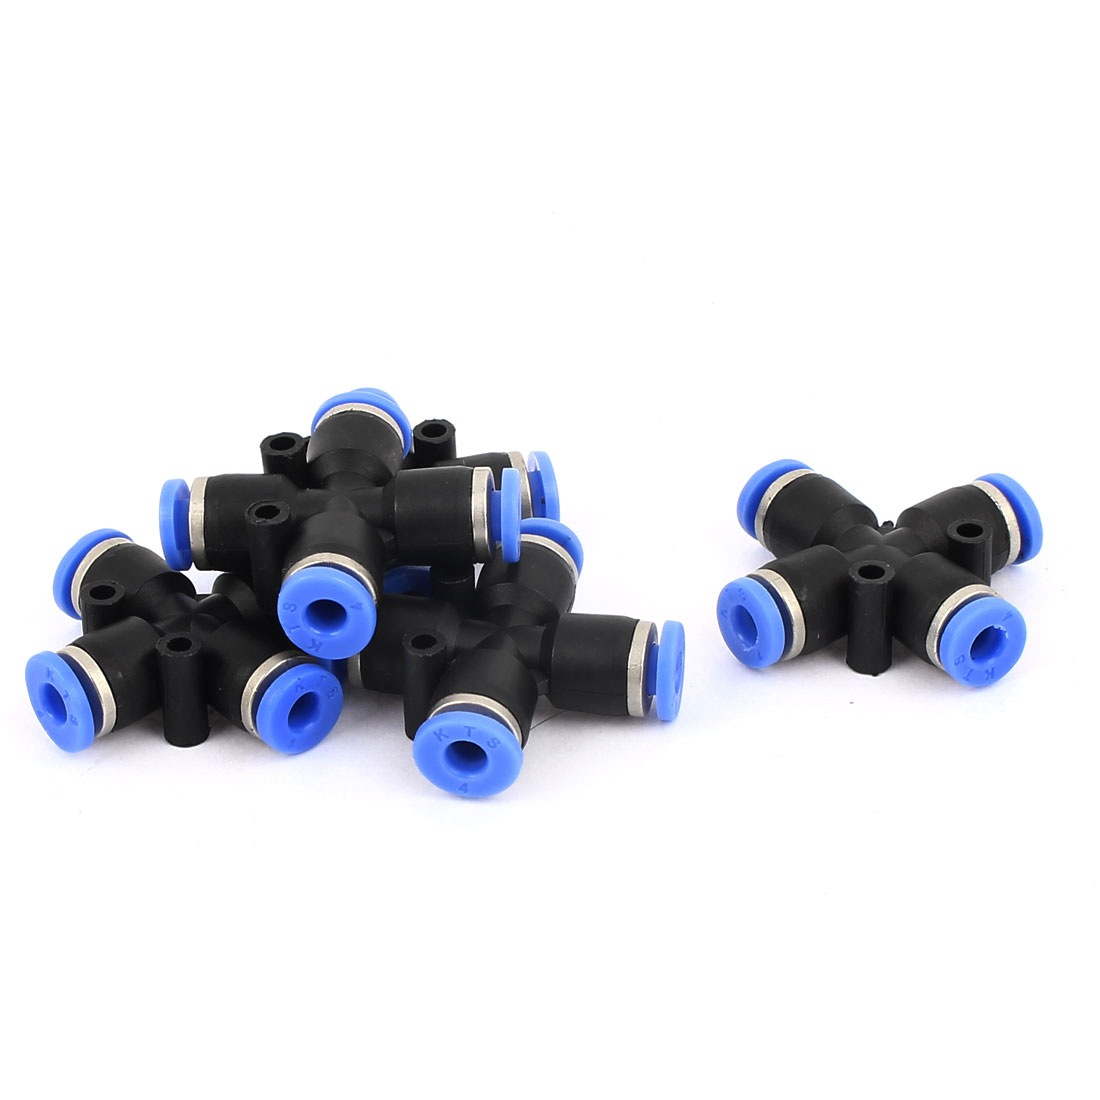 5 Pcs 4mm Pneumatic Equal Cross Union Push In Fitting Quick Connect Air Tube